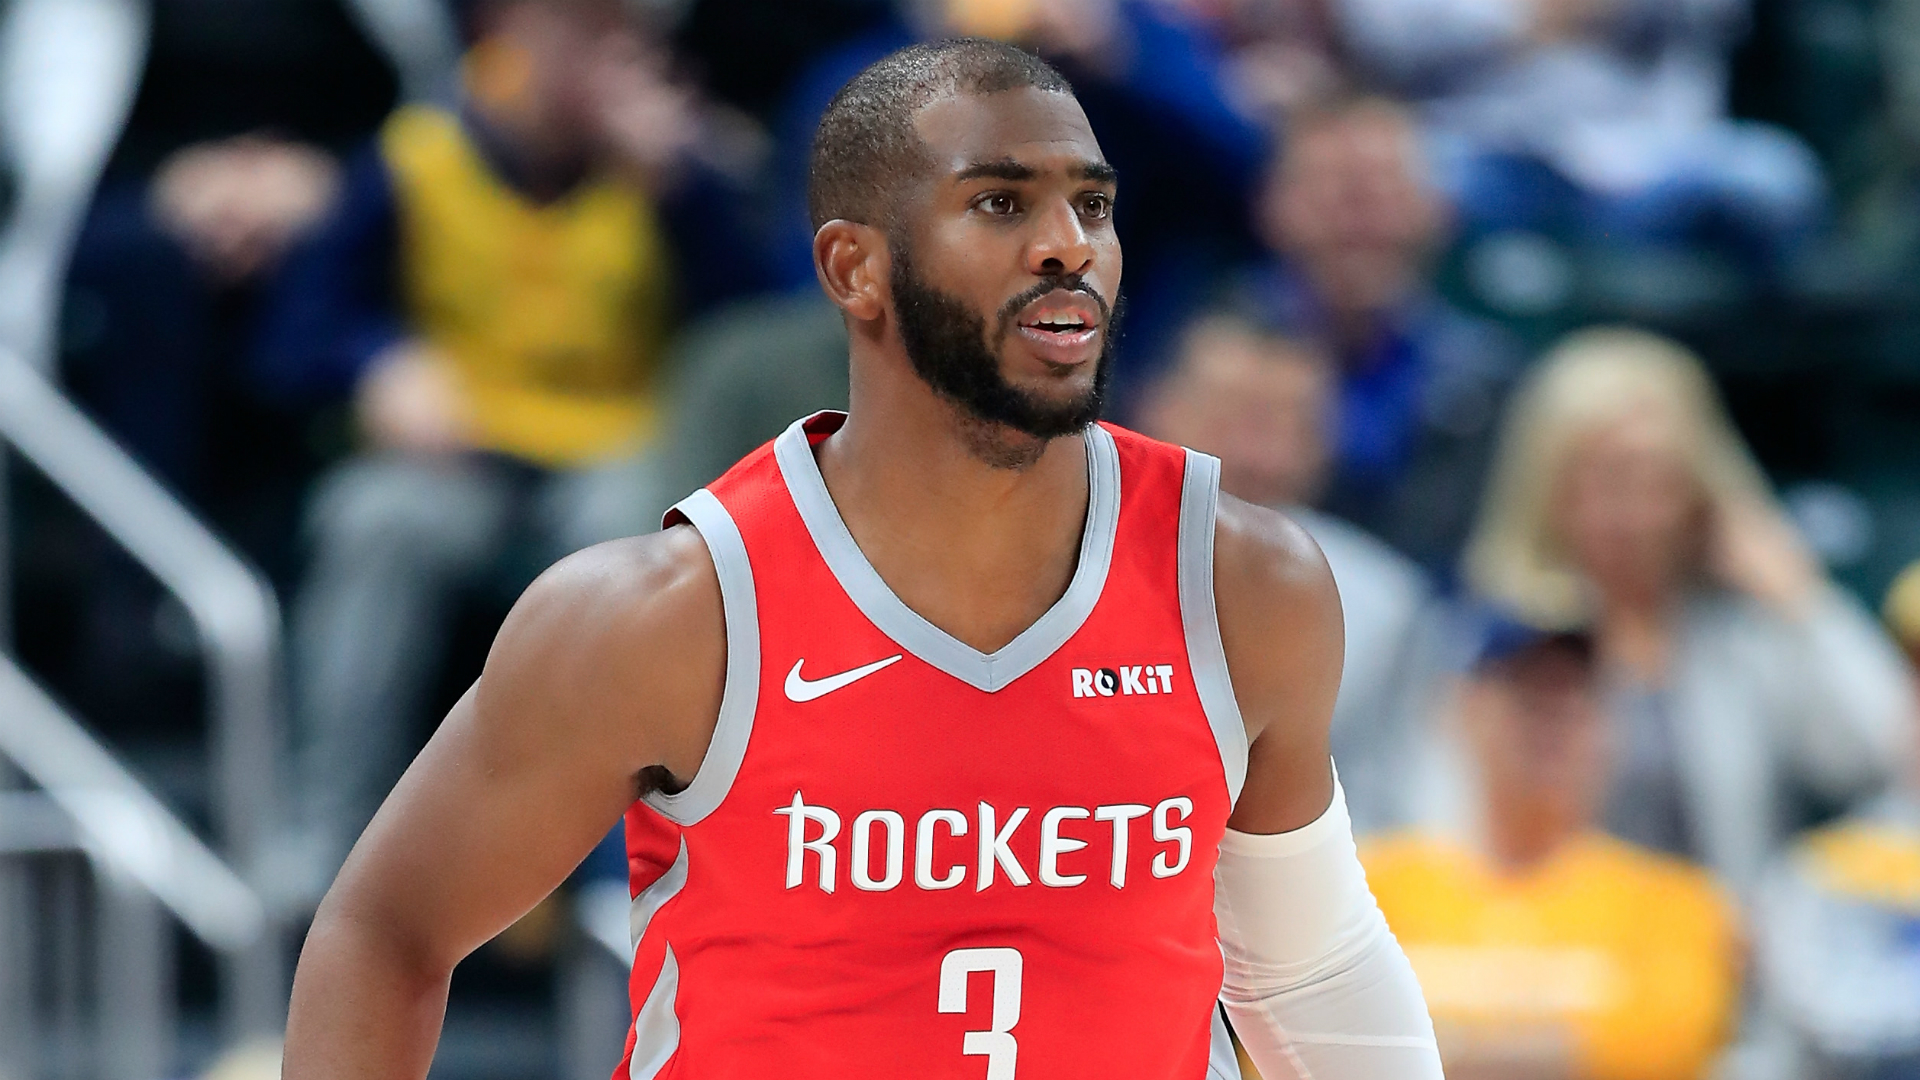 Chris Paul to miss 2-3 weeks due to hamstring injury